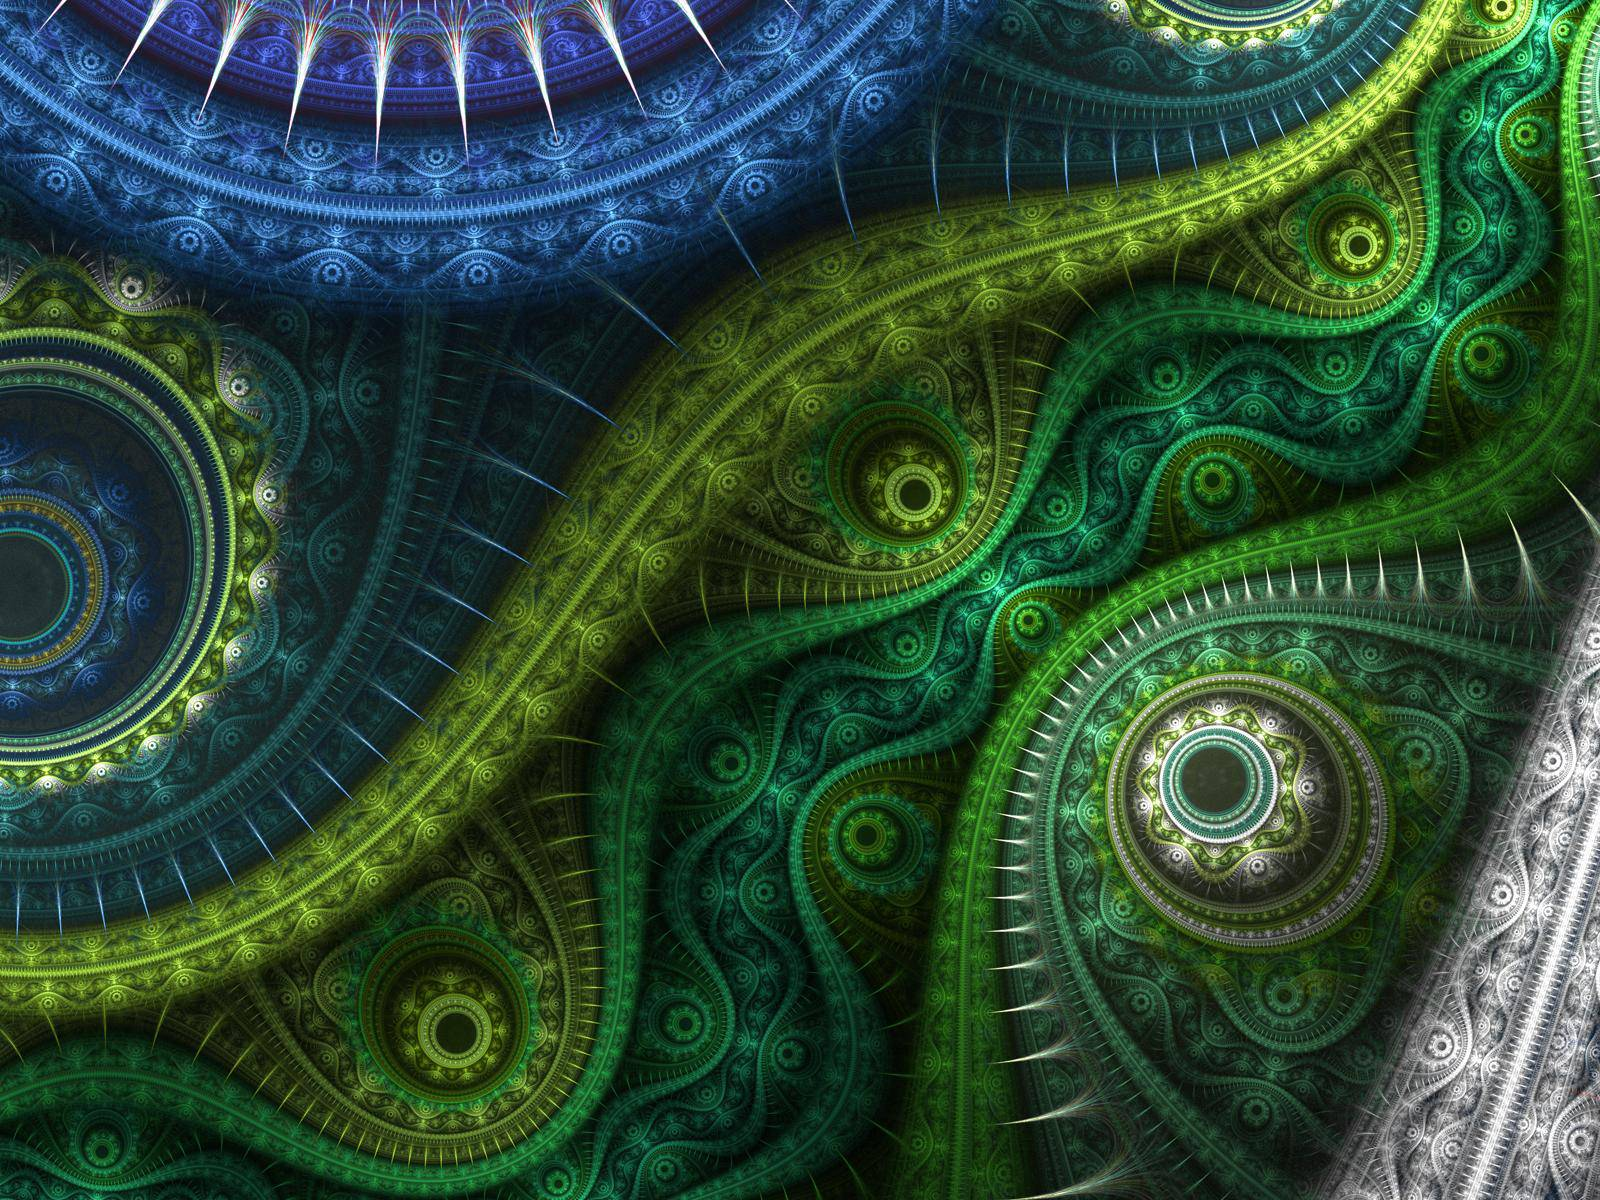 download trippy green wallpaper gallery